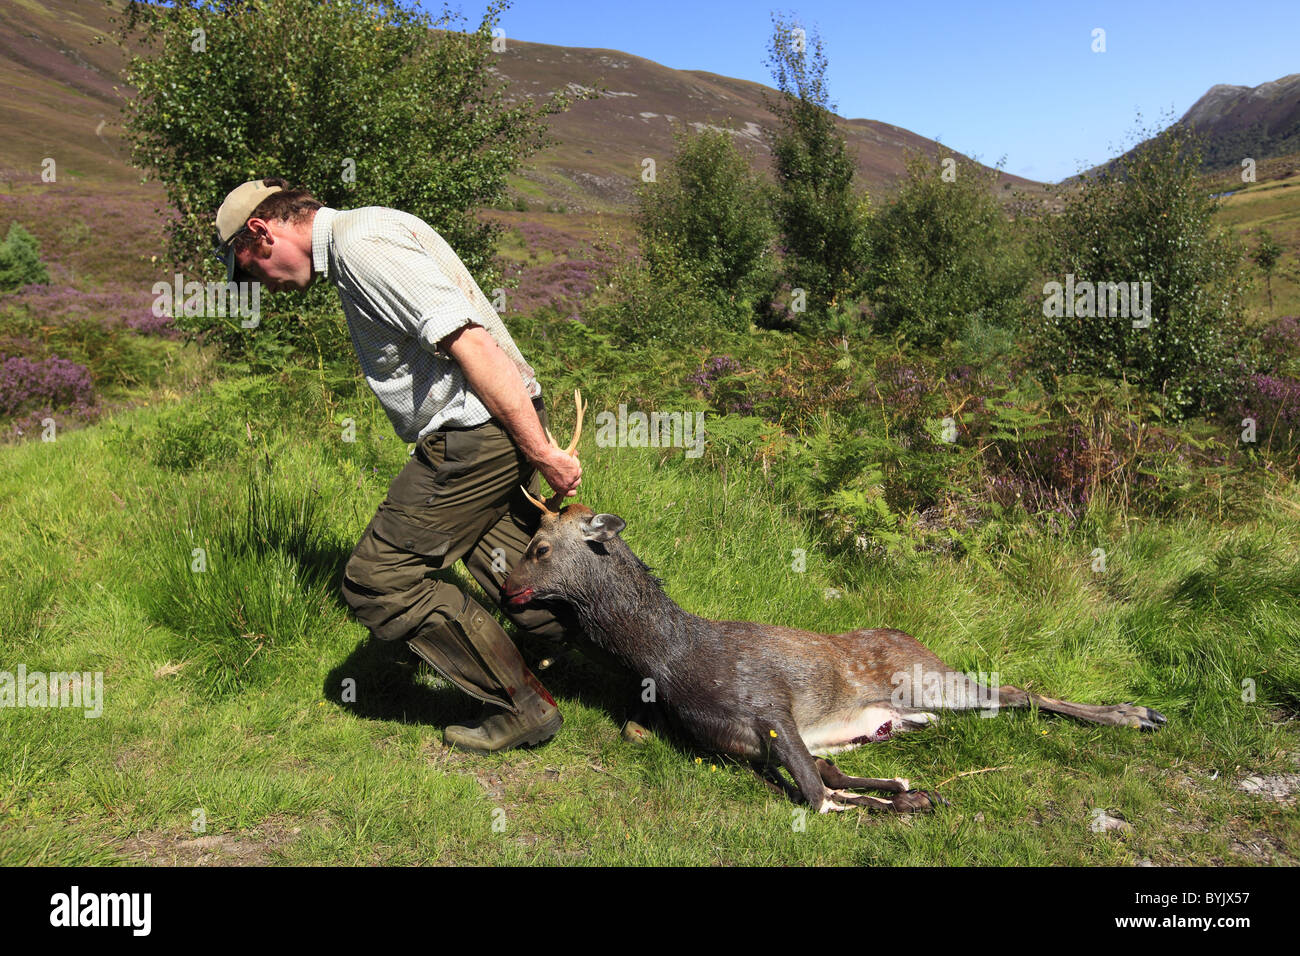 Sika Deer (Cervus nippon). Hunter with dead stag in a private property in the Scottish highlands, Scotland. - Stock Image